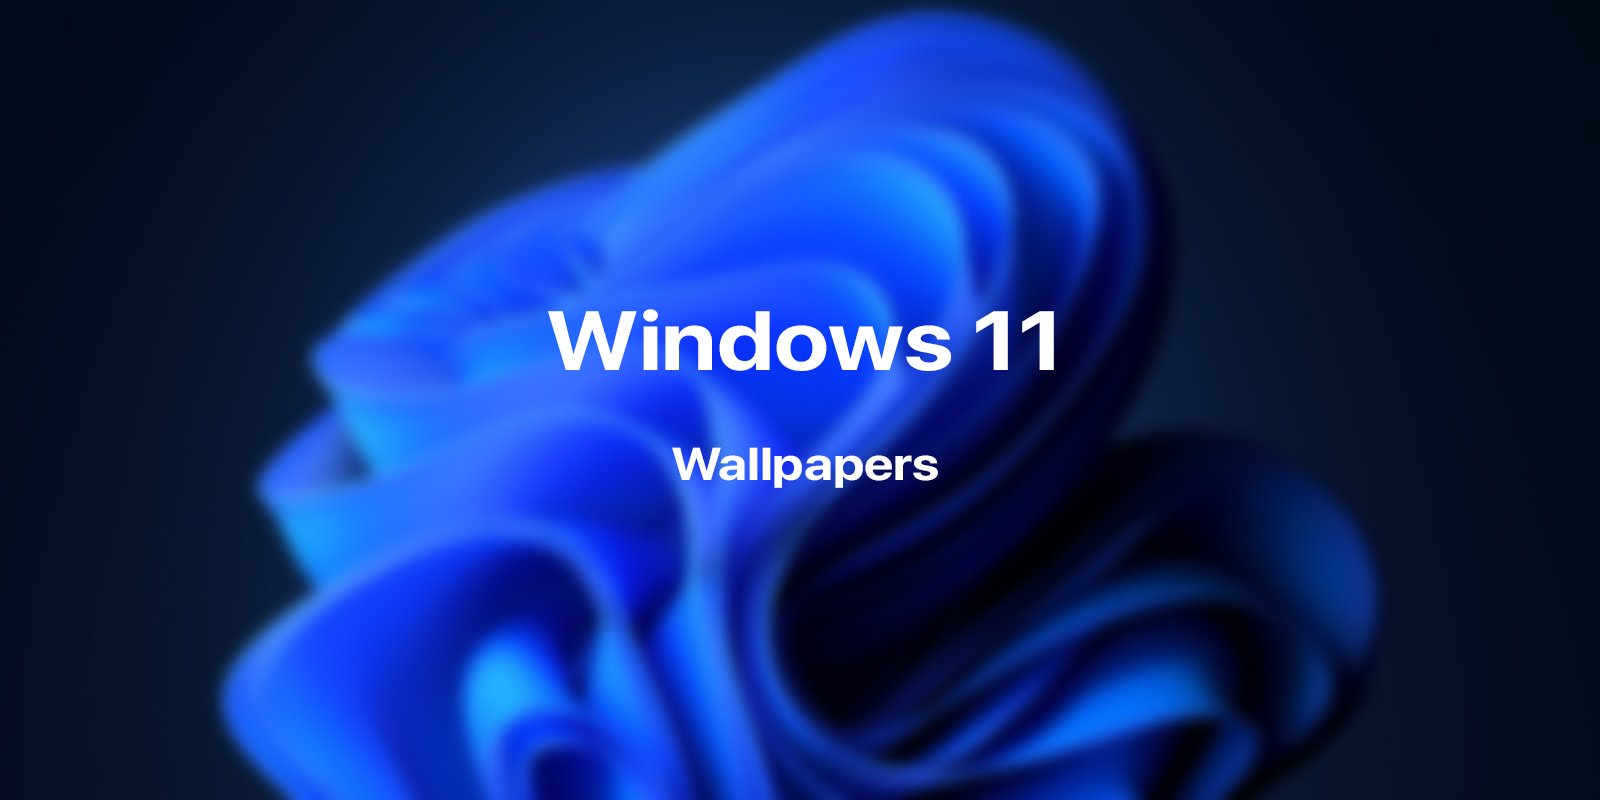 Download leaked Windows 11 wallpapers